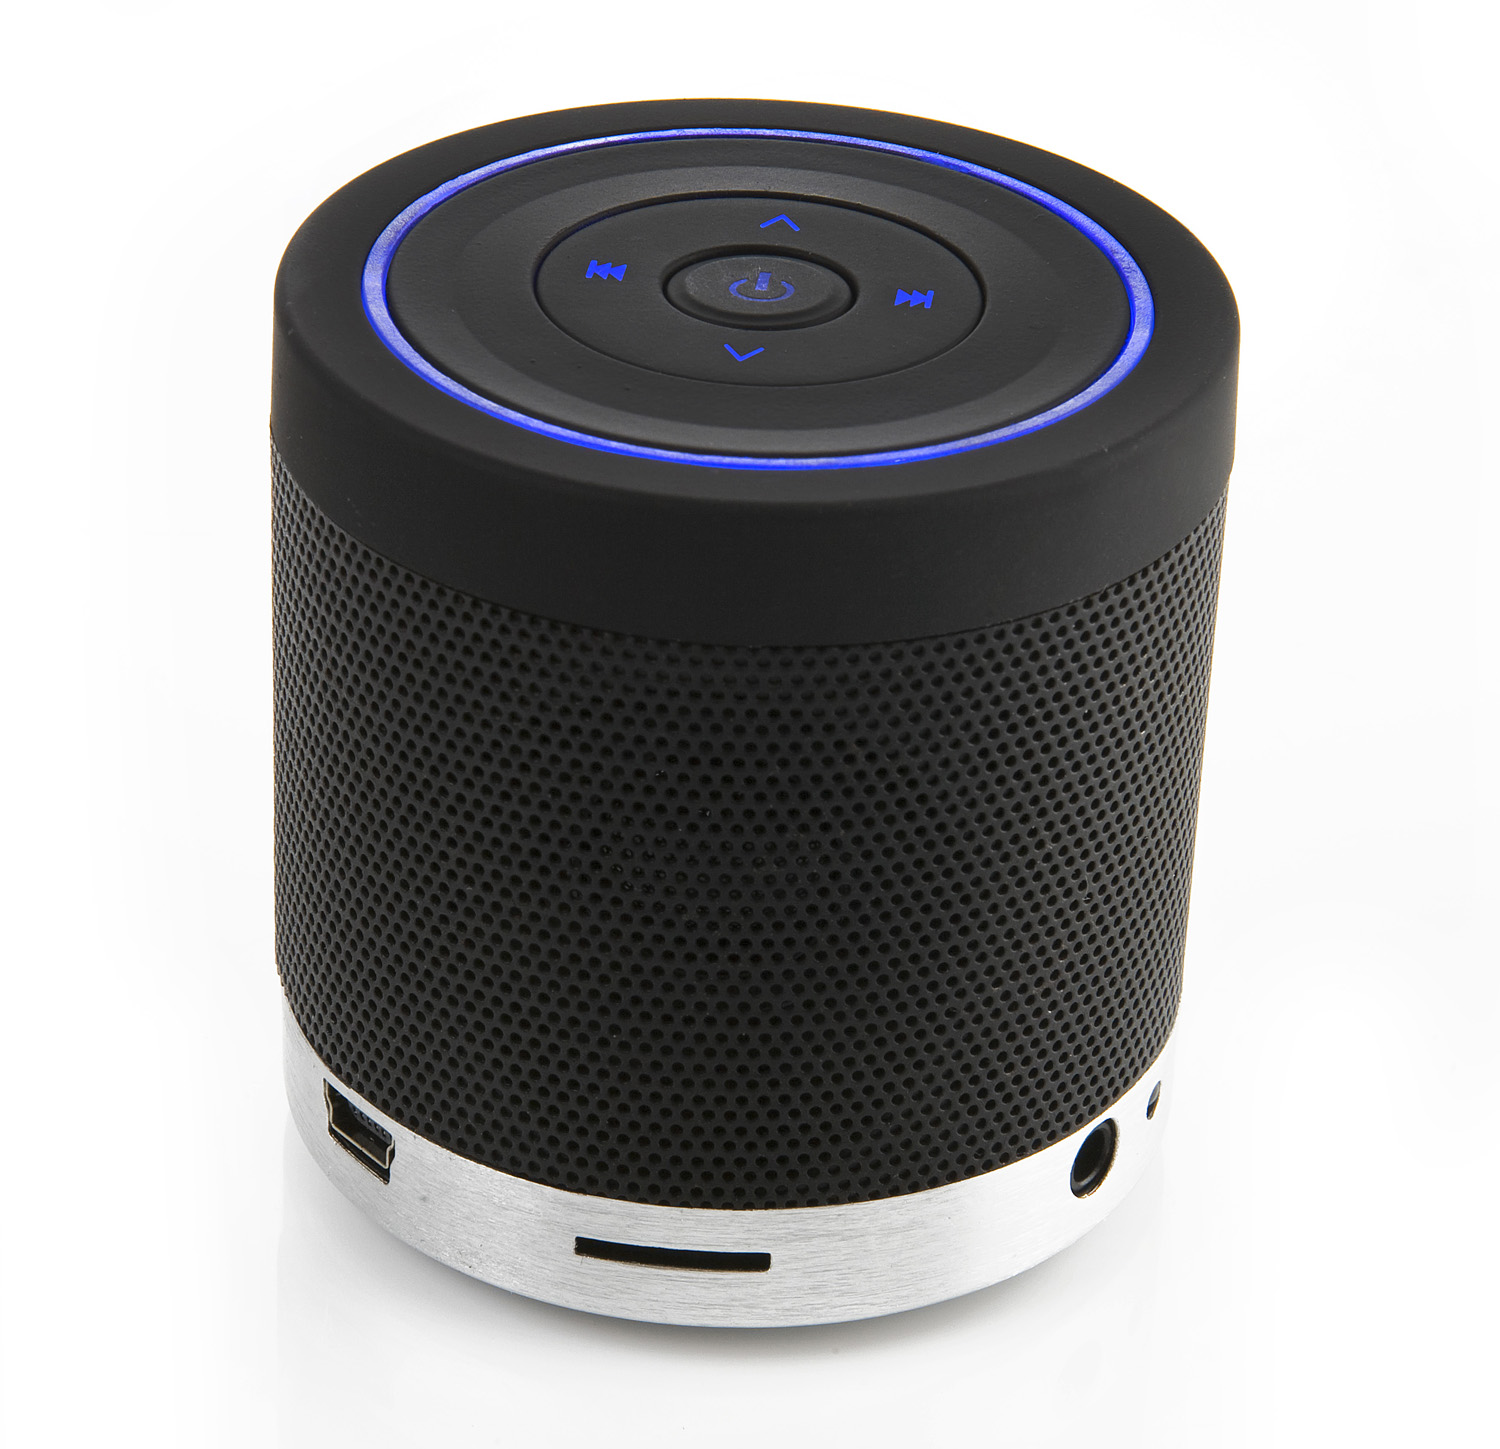 Veho VSS-009-360BT M4 Portable Rechargeable Wireless Bluetooth Speaker With For